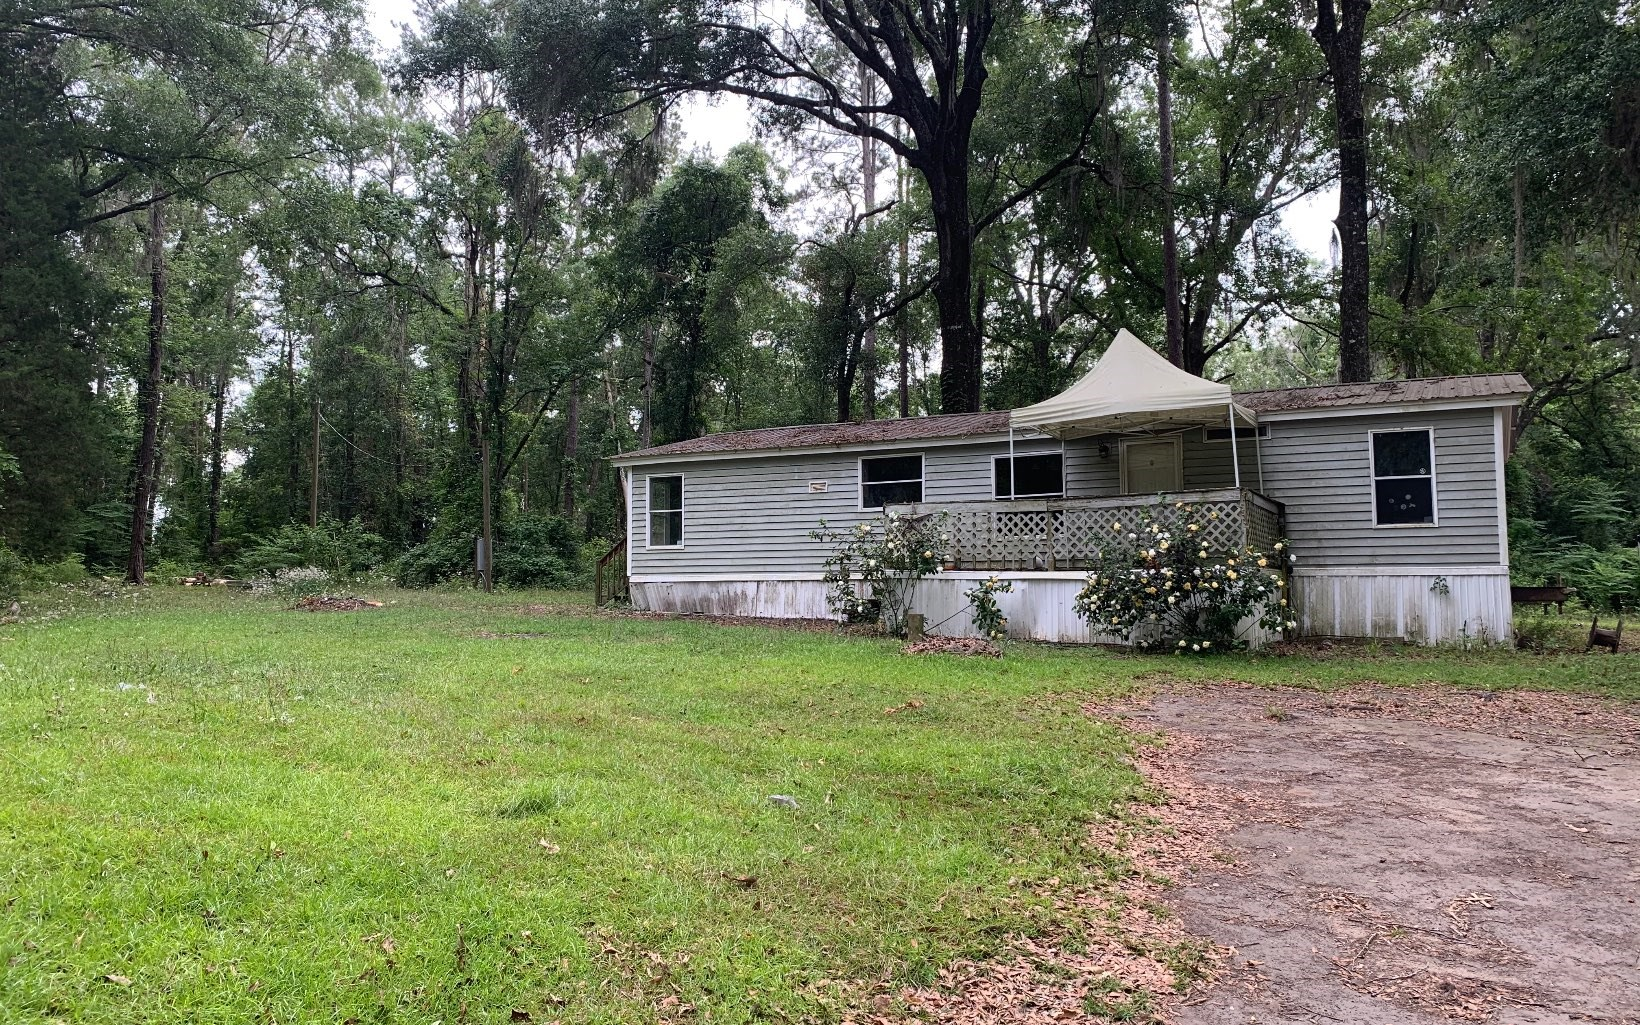 5.15 acres with a 3/2, 1993 doublewide mobile home.